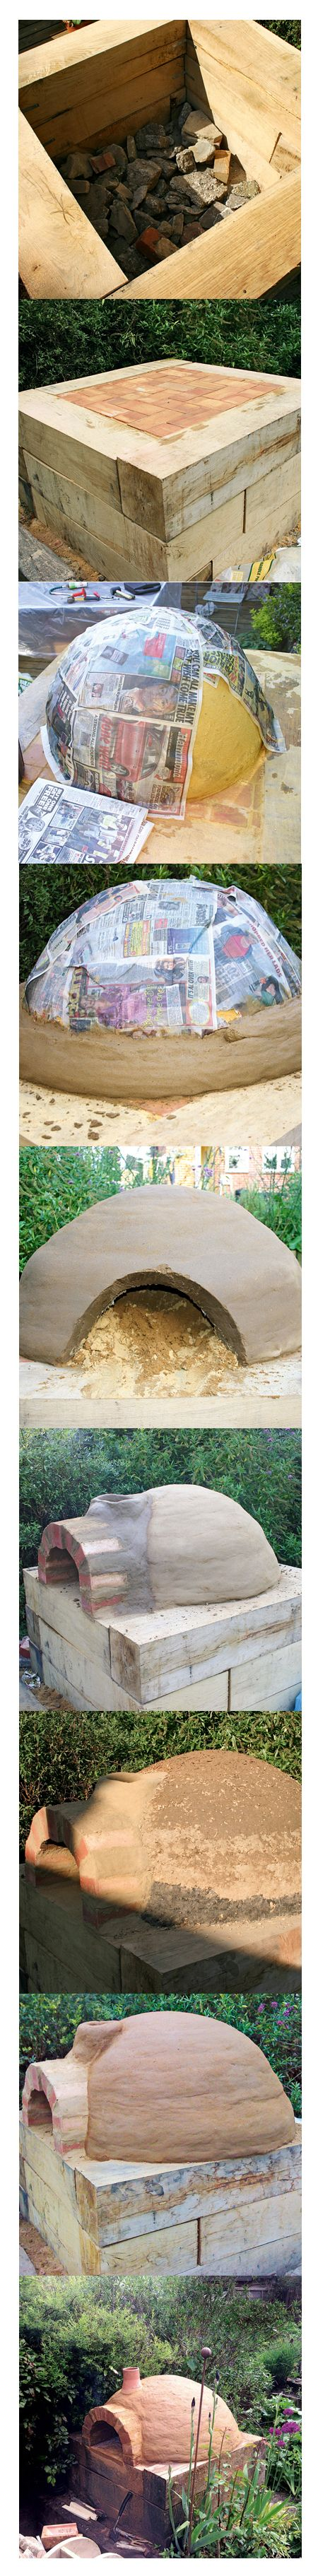 best 25 outdoor pizza ovens ideas on pinterest brick oven